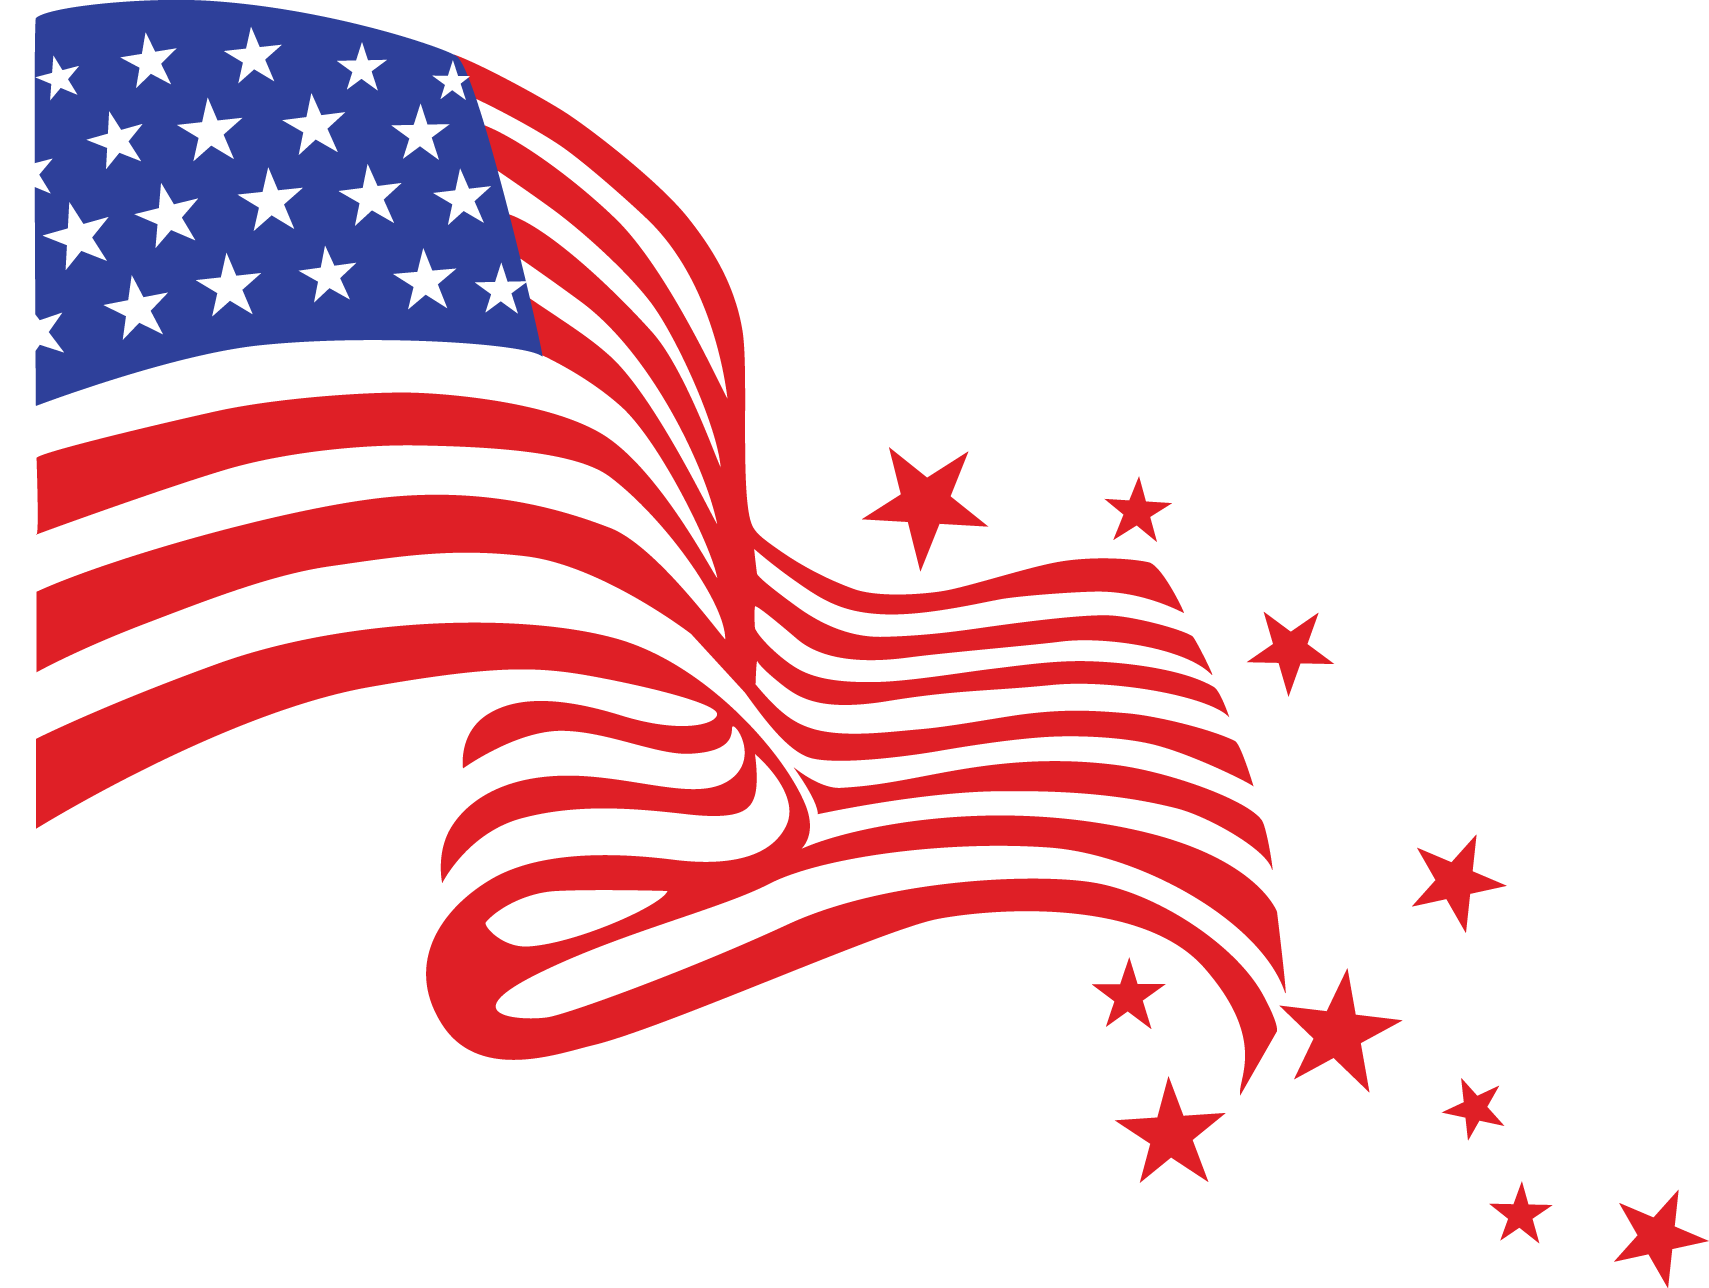 American flag and fireworks clipart » Clipart Portal.